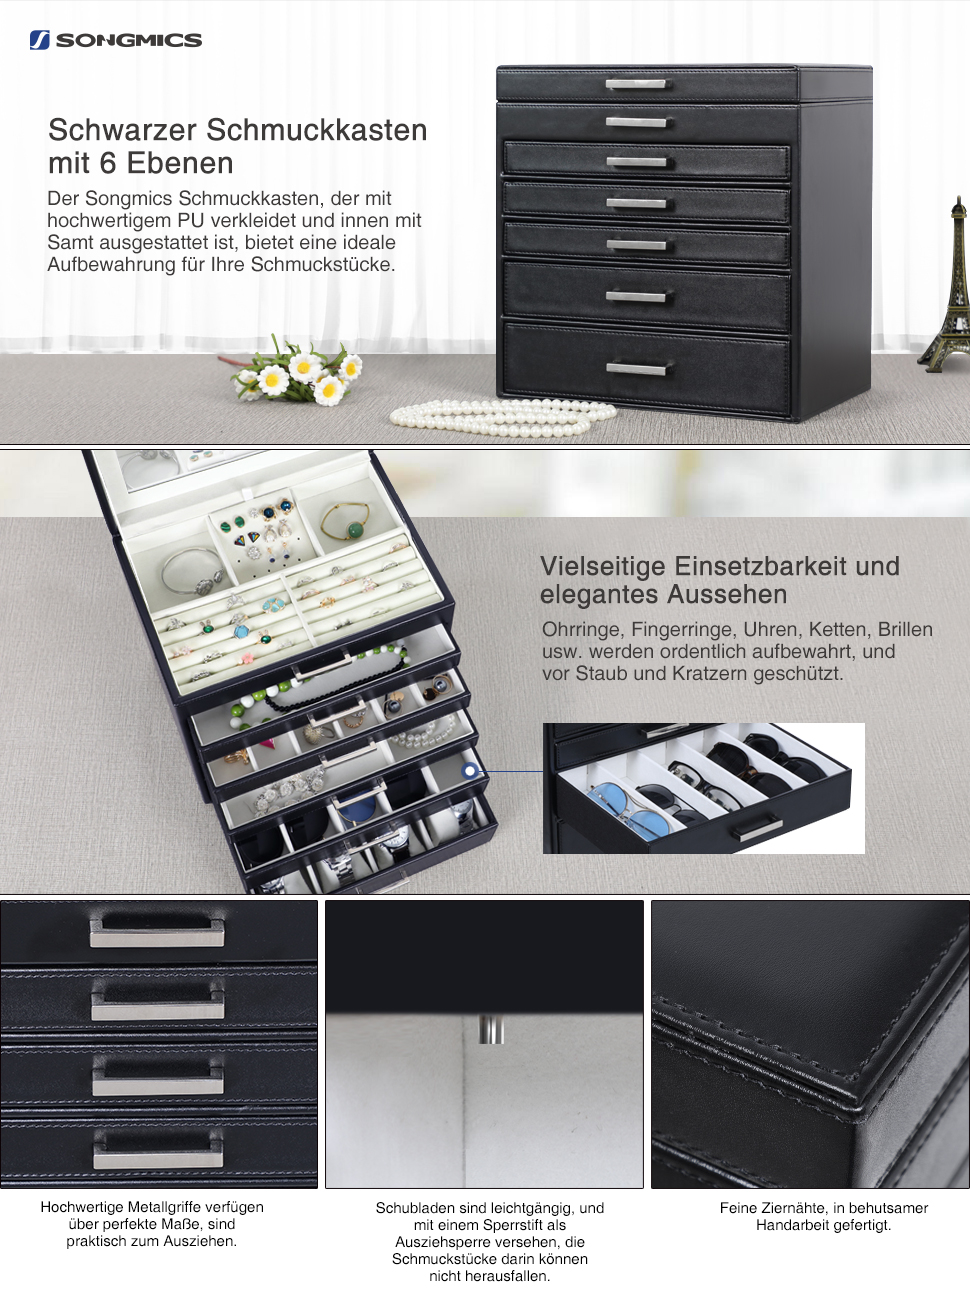 songmics schmuckkasten schmuckaufbewahrung 6 ebenen mit 5 schubladen spiegel. Black Bedroom Furniture Sets. Home Design Ideas